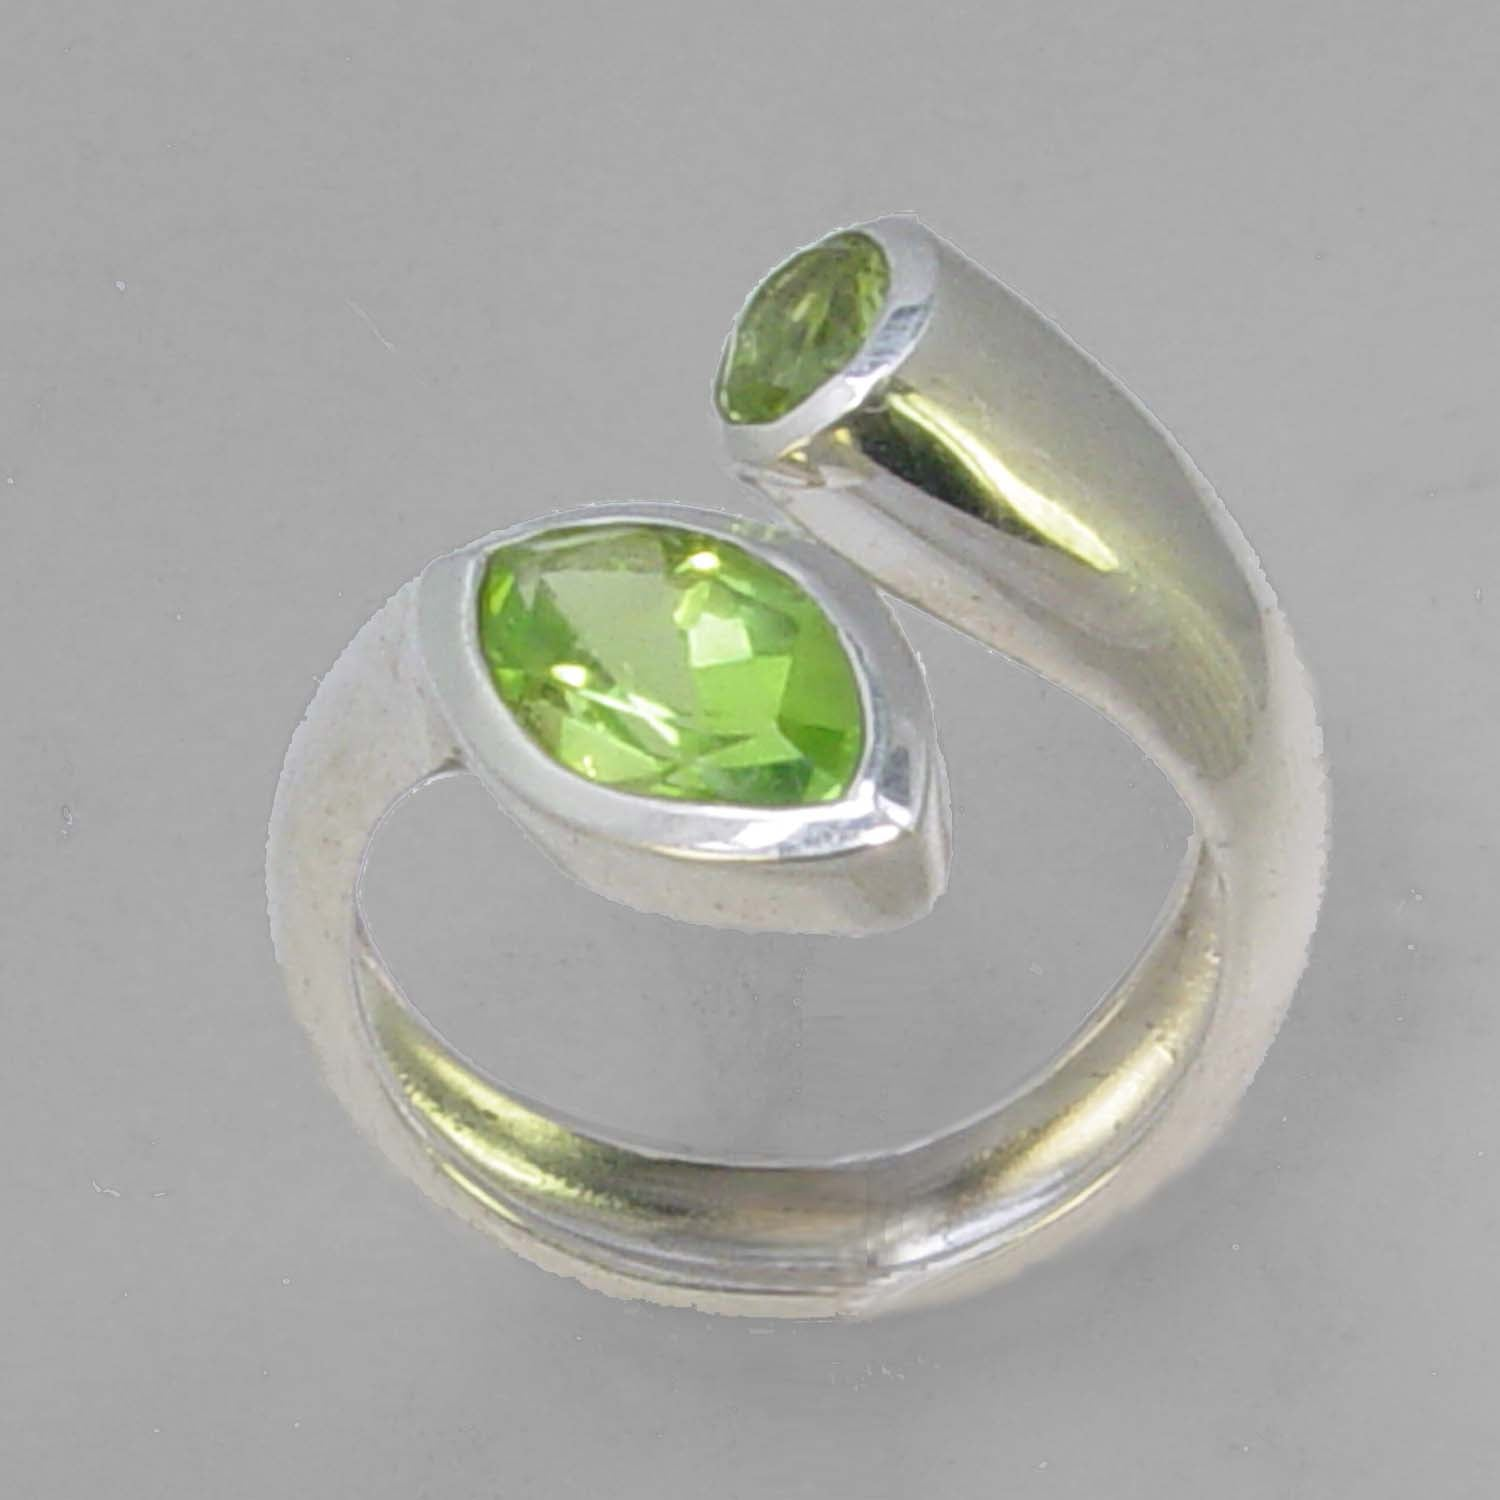 Peridot 2.0 ct Marquise Bezel Set Sterling Silver Offset Ring, Size 8, ADJ